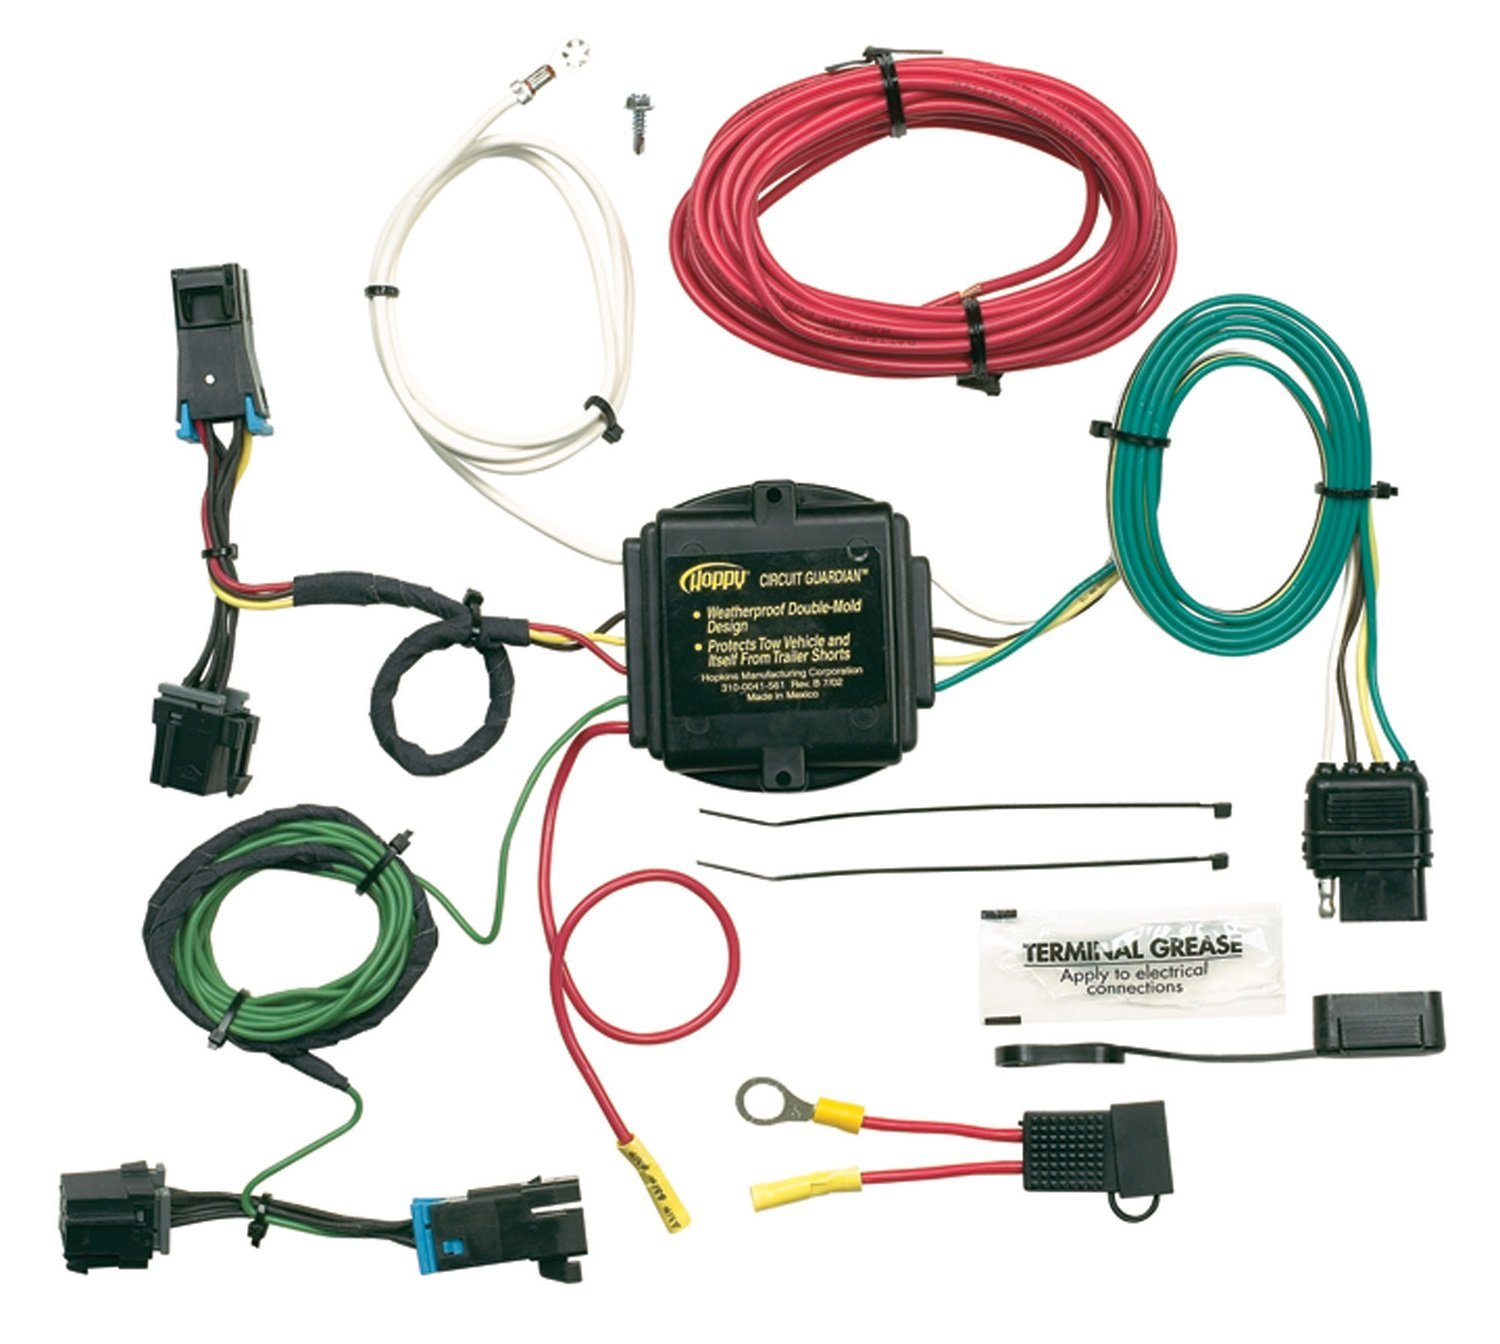 vehicle wiring solutions schematic wiring diagram u2022 rh cosmeticexpress co Automotive Wiring Kit Automotive Wiring Plugs